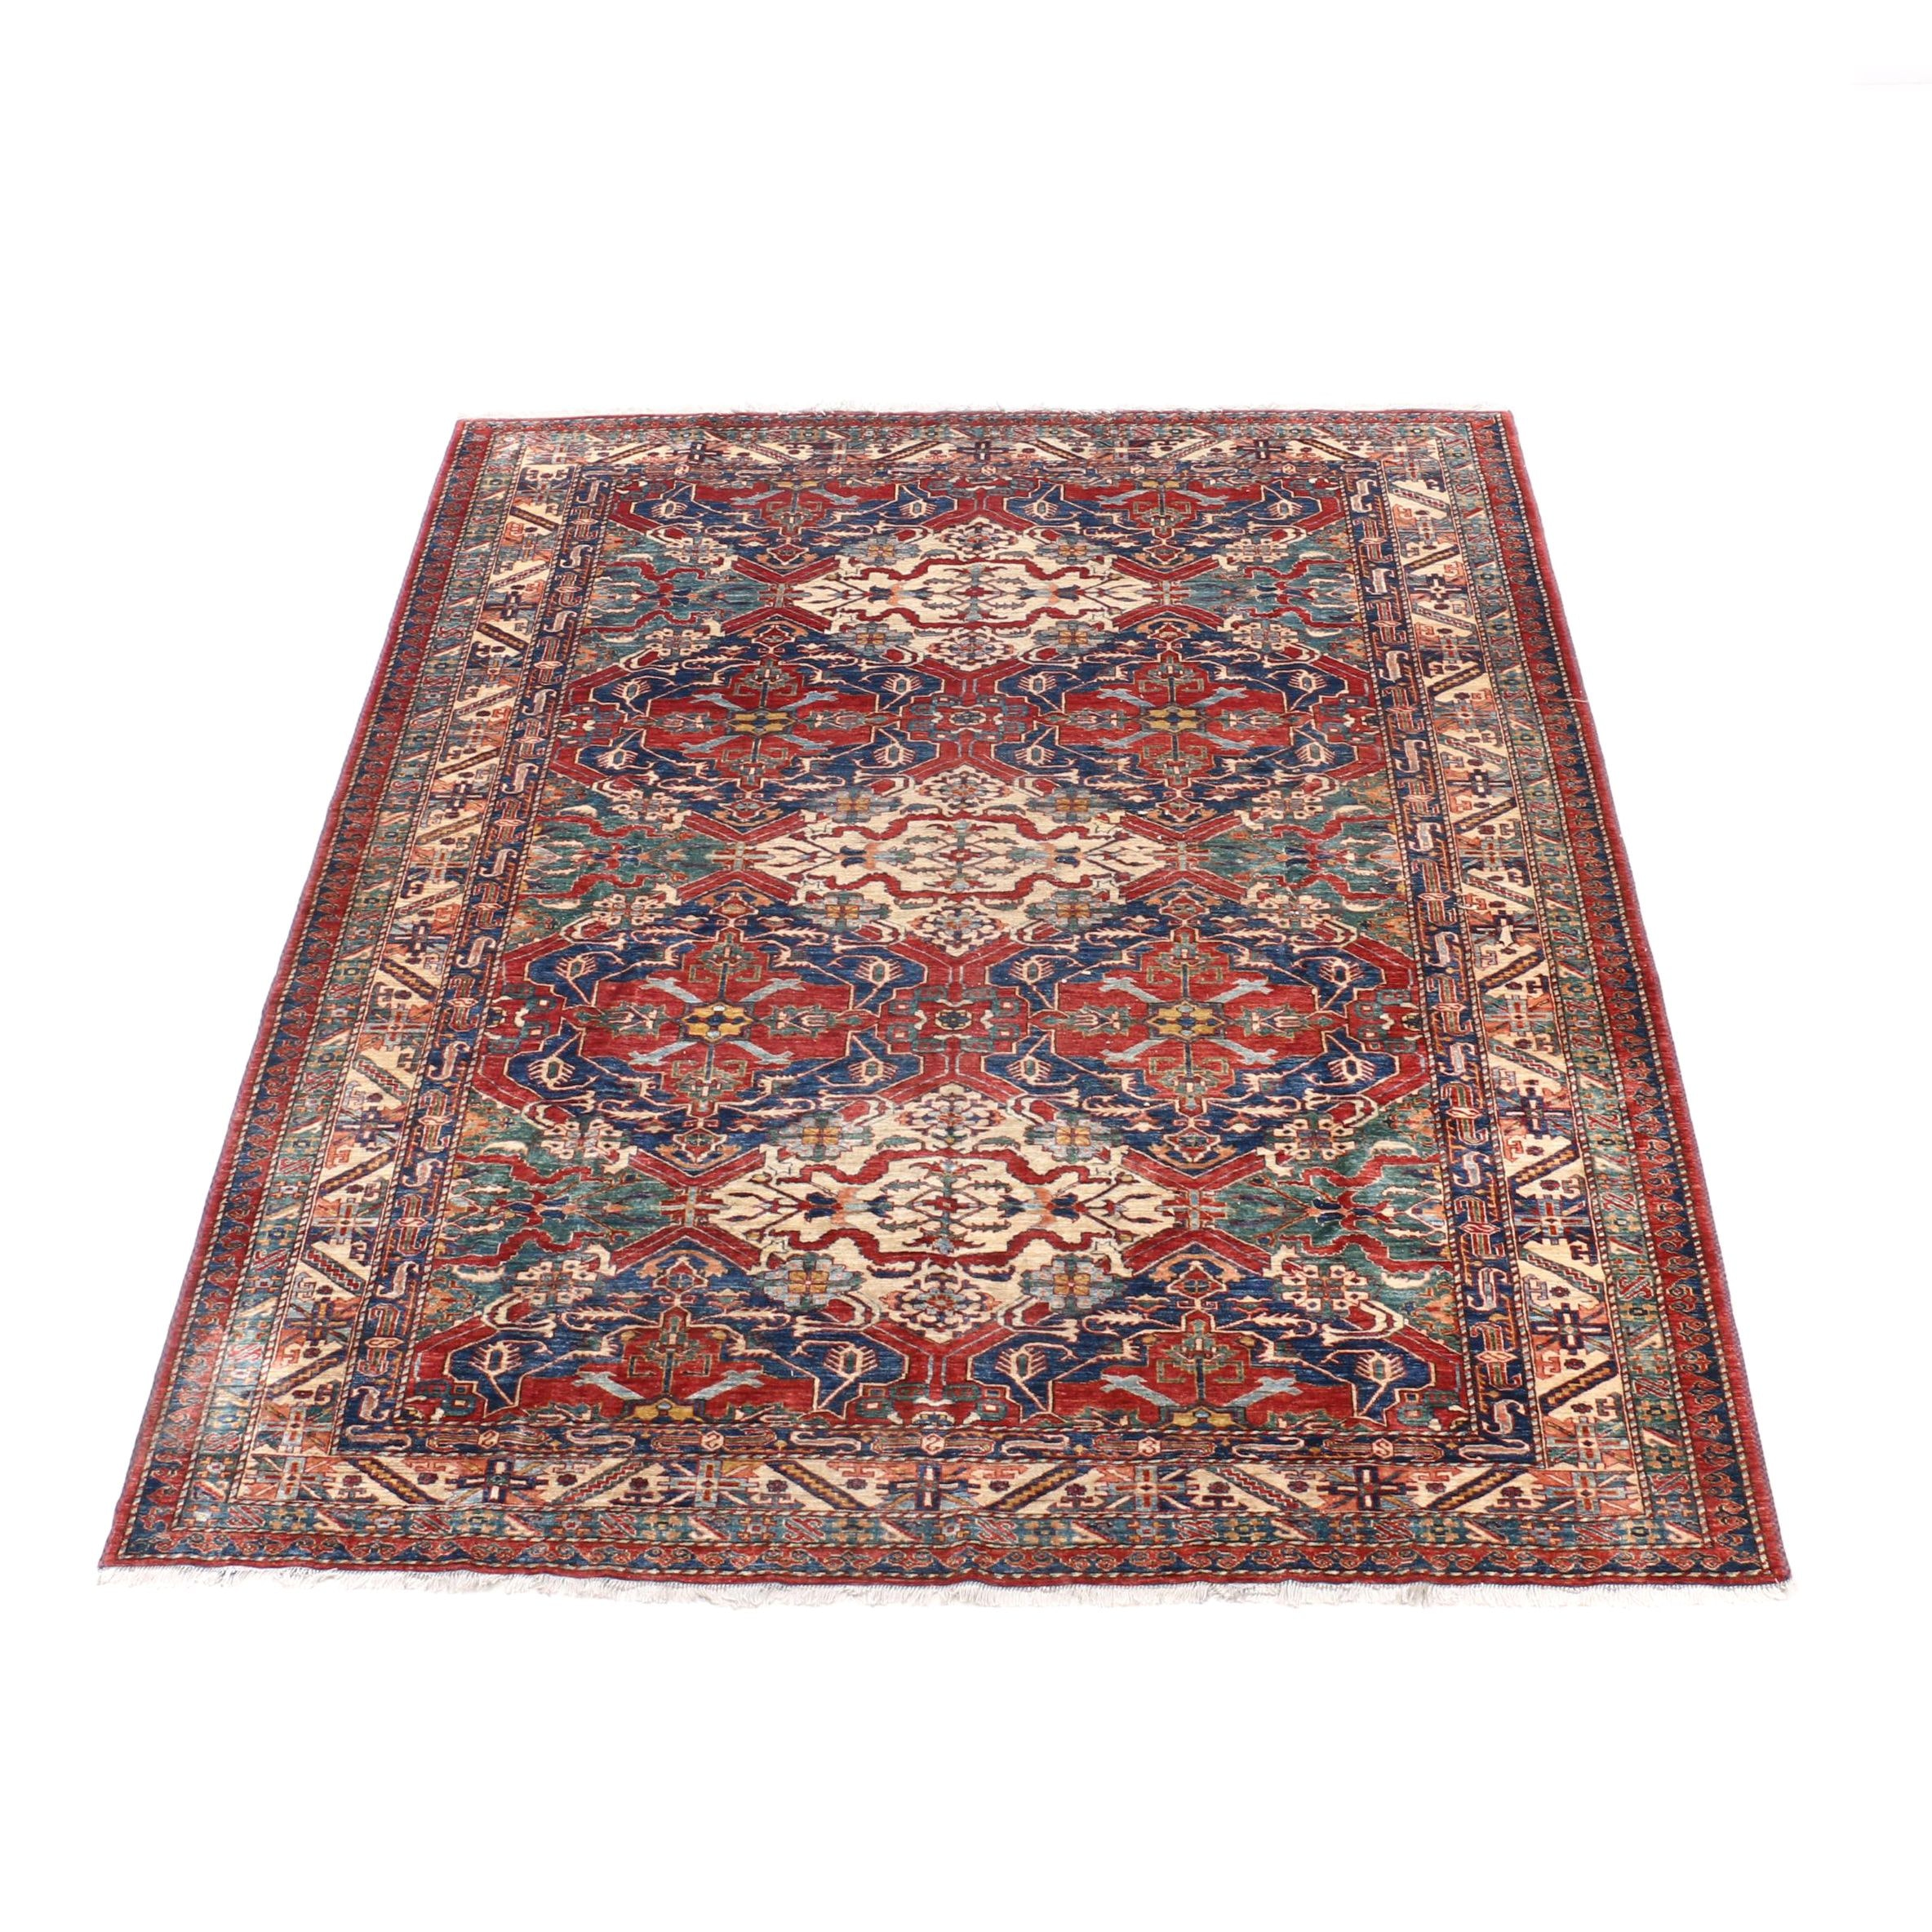 Hand-Knotted Karabagh Chondoresk Type Wool and Silk Room Sized Rug